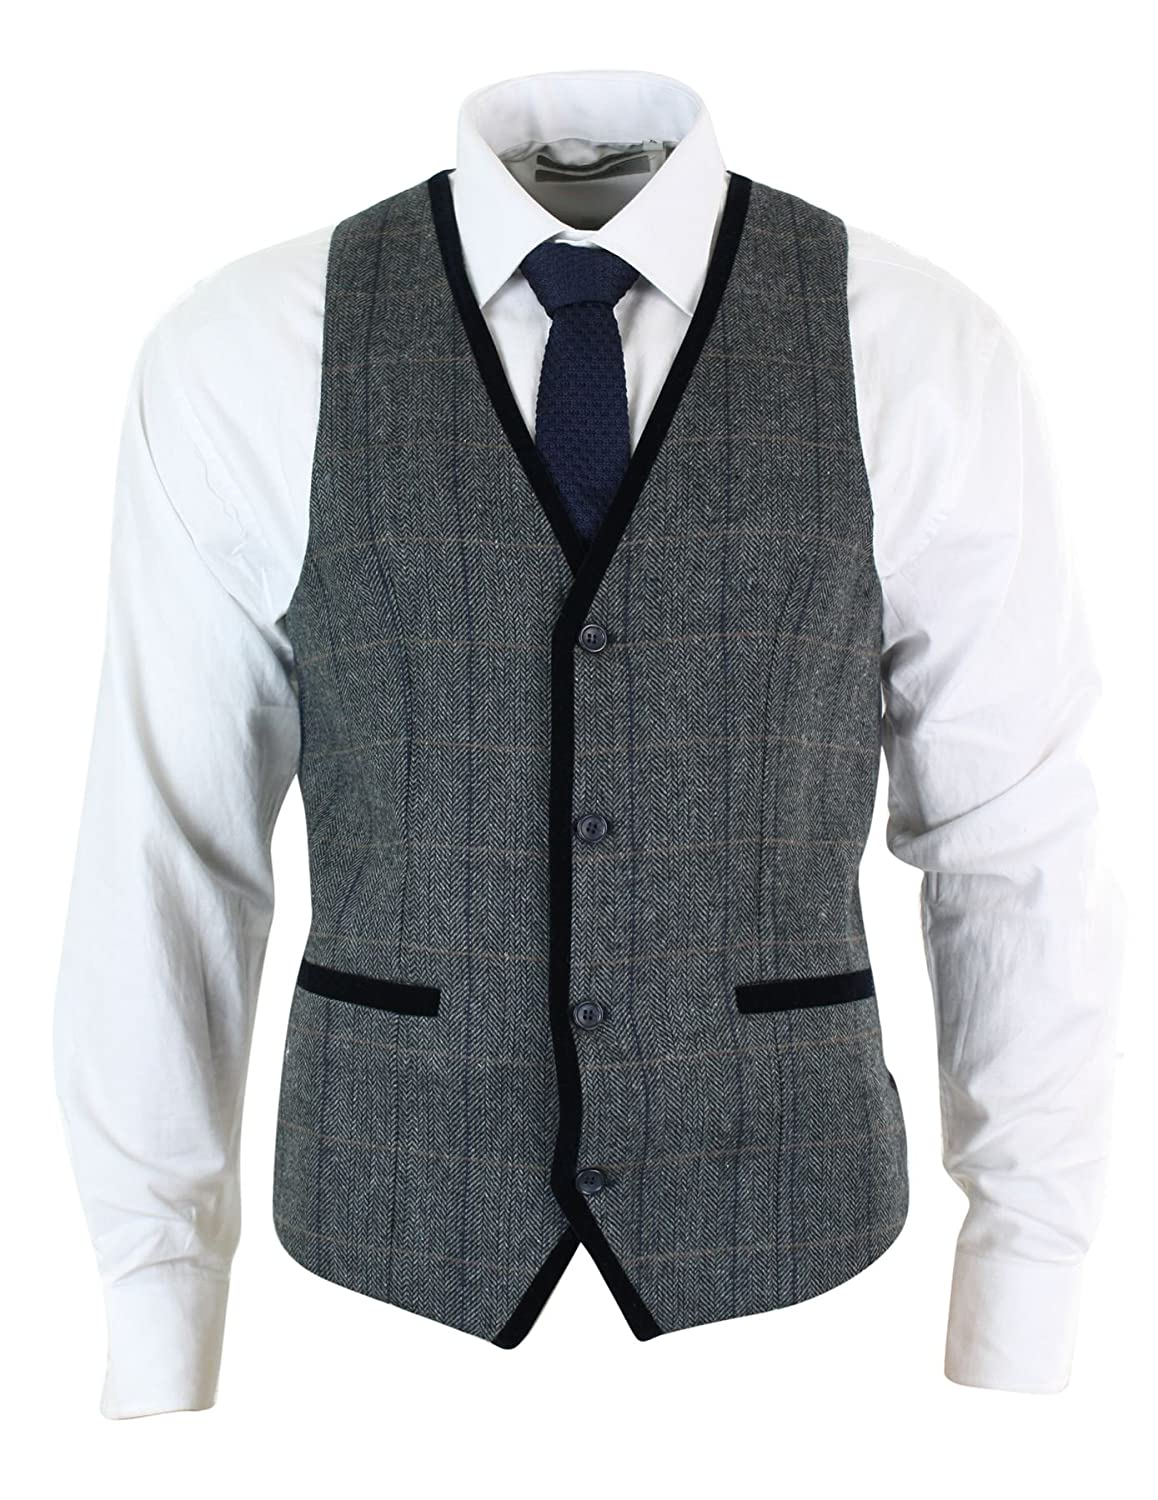 Gilet Elegante da Uomo in Tweed Blu, Blu Scuro o Nocciola e Finiture in Velluto Marc Darcy